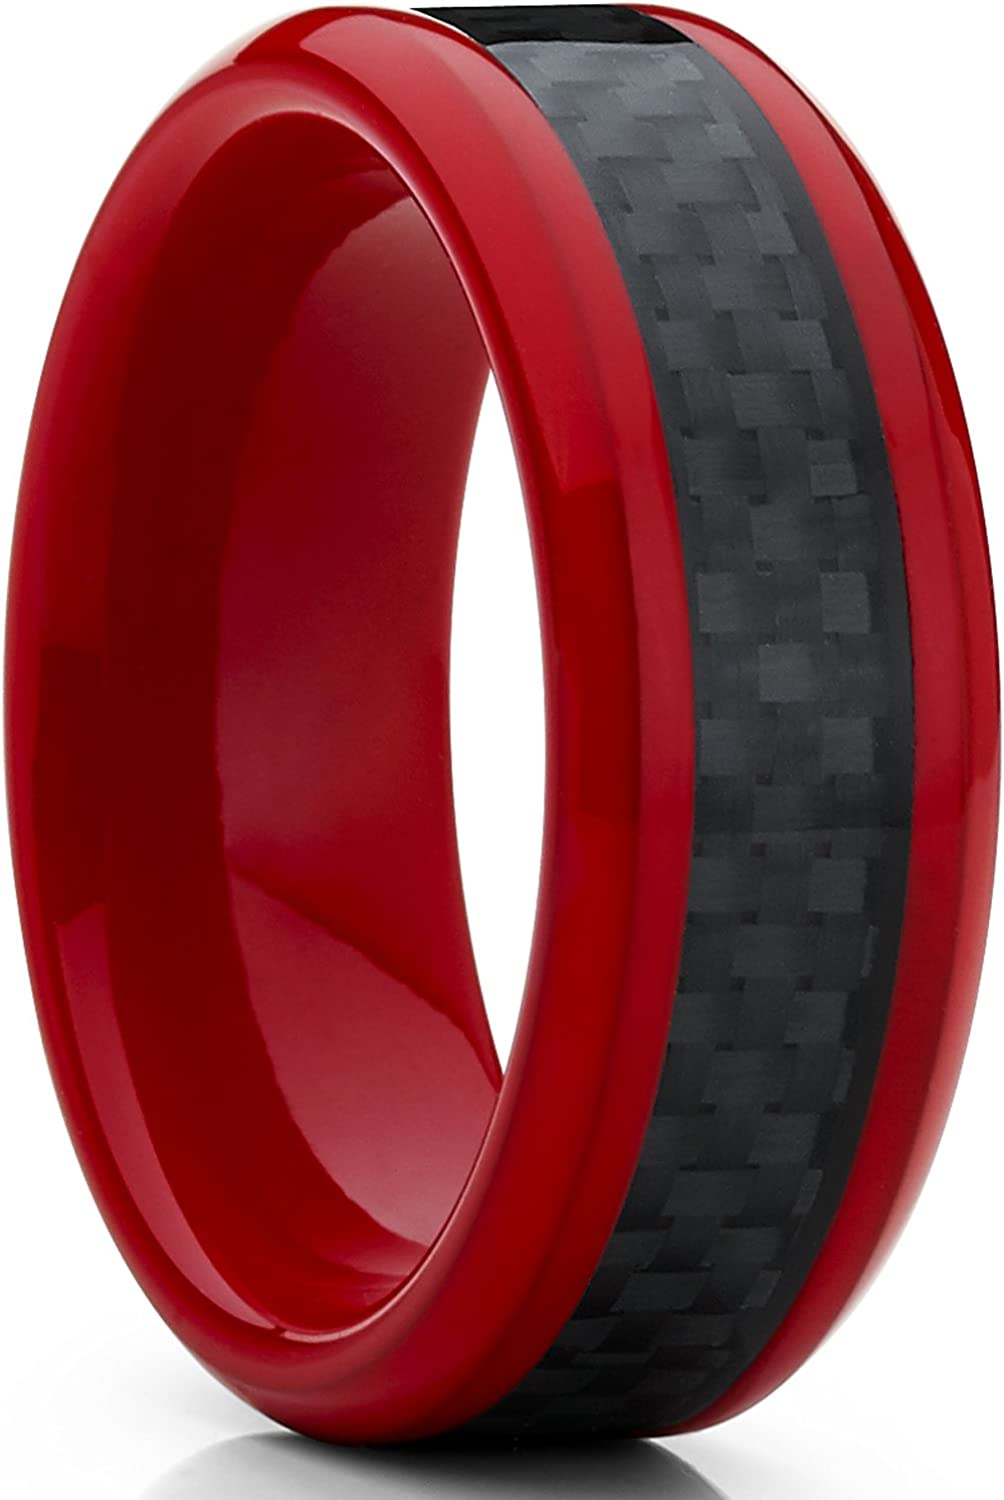 Metal Masters Co. 8MM Red Tungsten Ring Men's Wedding Band with Black Carbon Fiber Inlay, Comfort Fit